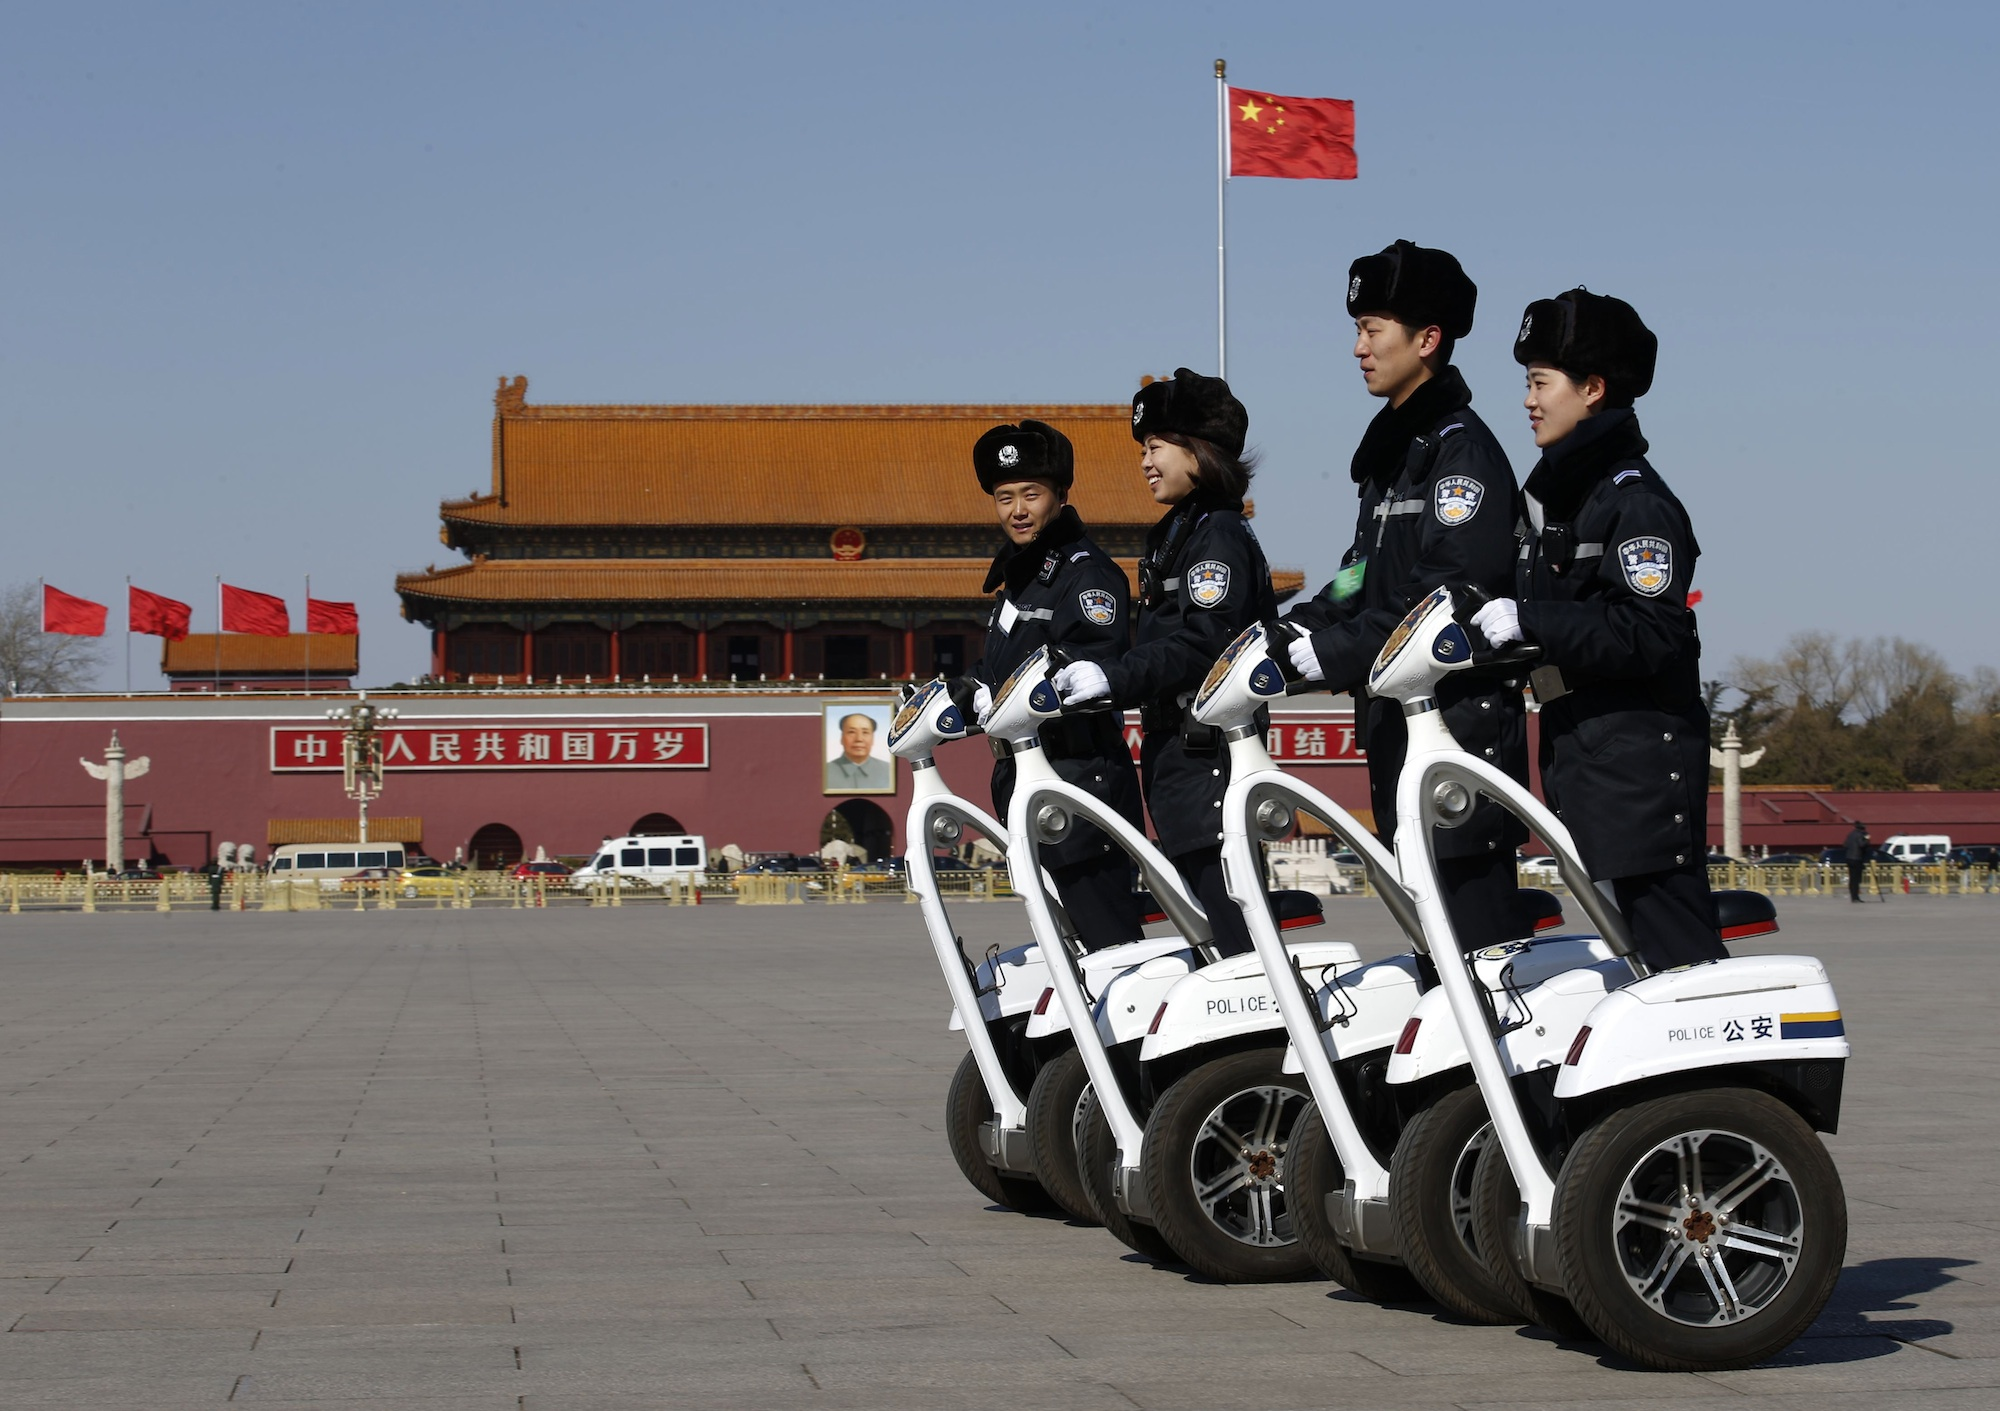 Police offices ride on motorized vehicles ahead of the opening session of Chinese People's Political Consultative Conference (CPPCC) at Tiananmen Square in Beijing, March 3, 2015. REUTERS/Kim Kyung-Hoon